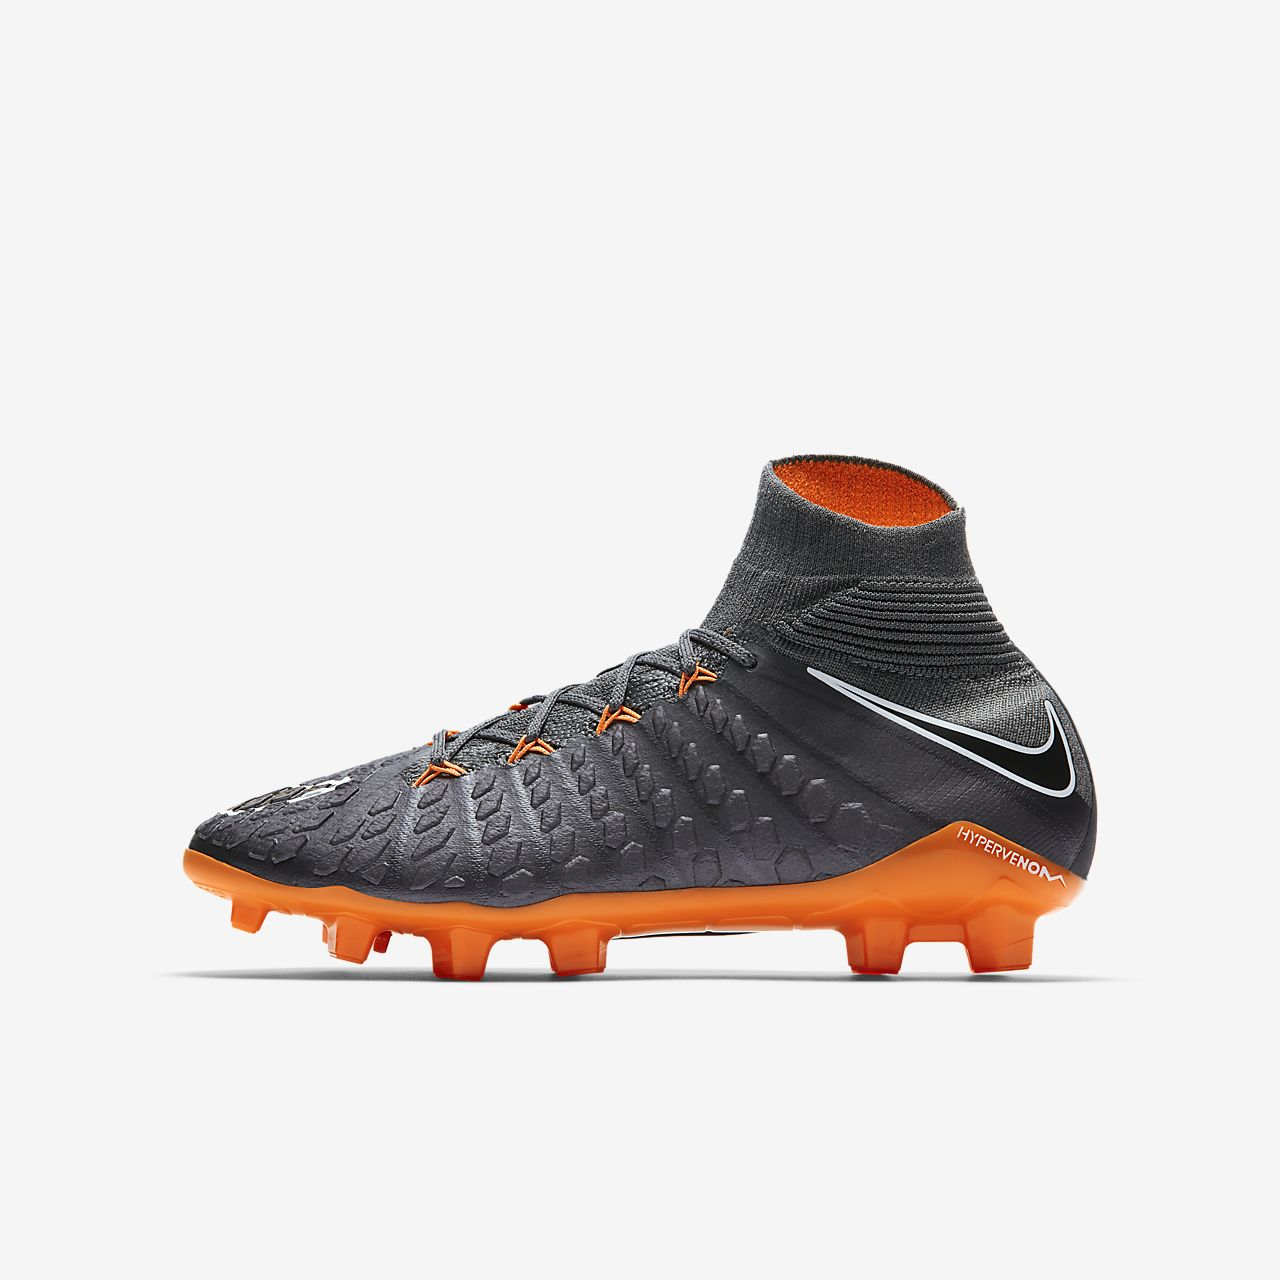 buy popular 600bb f9343 official store nike jr. hypervenom phantom iii elite dynamic fit fg  fotballsko til gress for